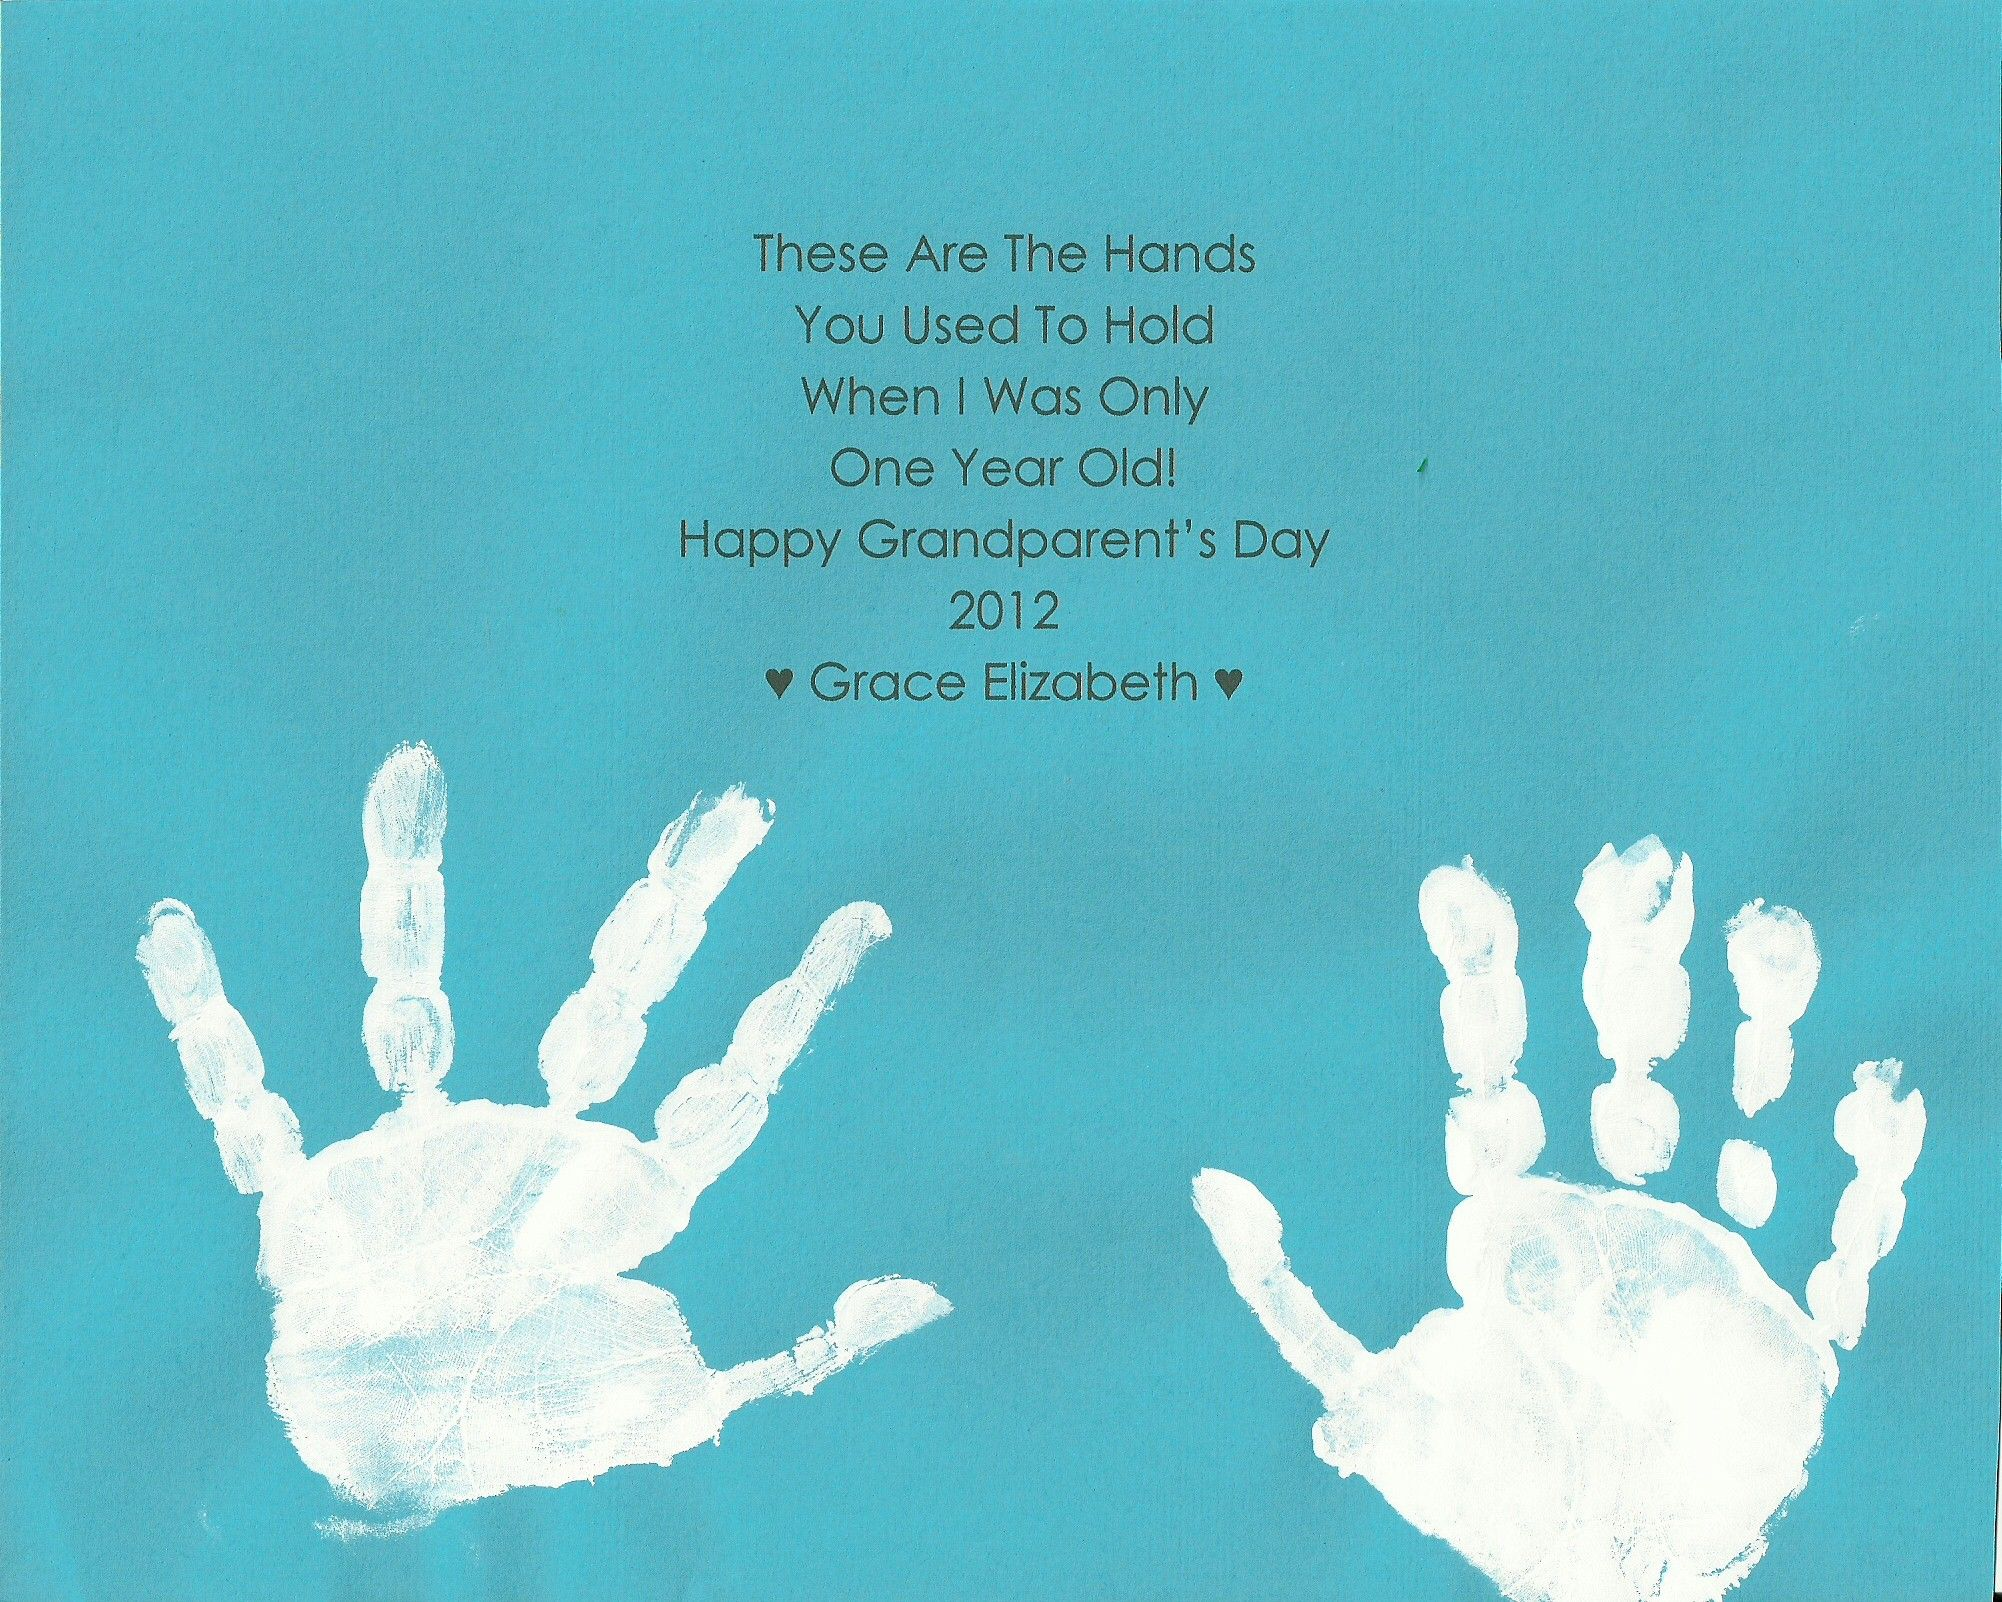 Valentines Day Quotes For Grandma: Grandparent's Day Poem & Hand Prints